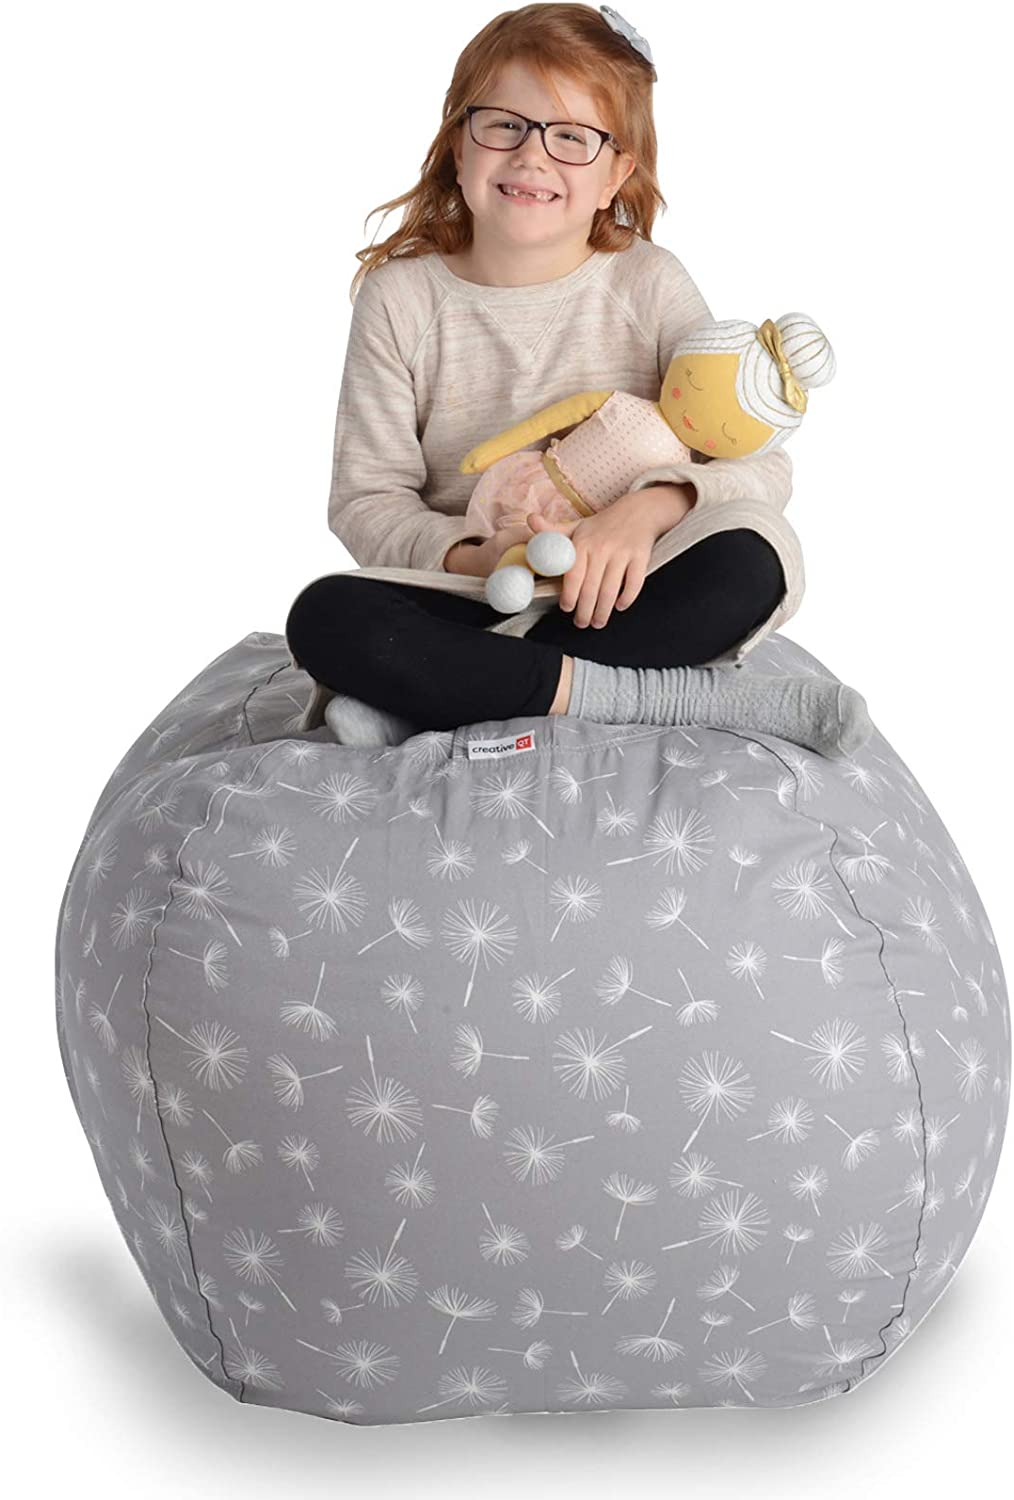 """B07T5XB3P2 Creative QT Stuffed Animal Storage Bean Bag Chair - Extra Large Stuff 'n Sit Organization for Kids Toy Storage - Available in a Variety of Sizes and Colors (38"""", Dandelion) 71CM98c%2BdOL"""